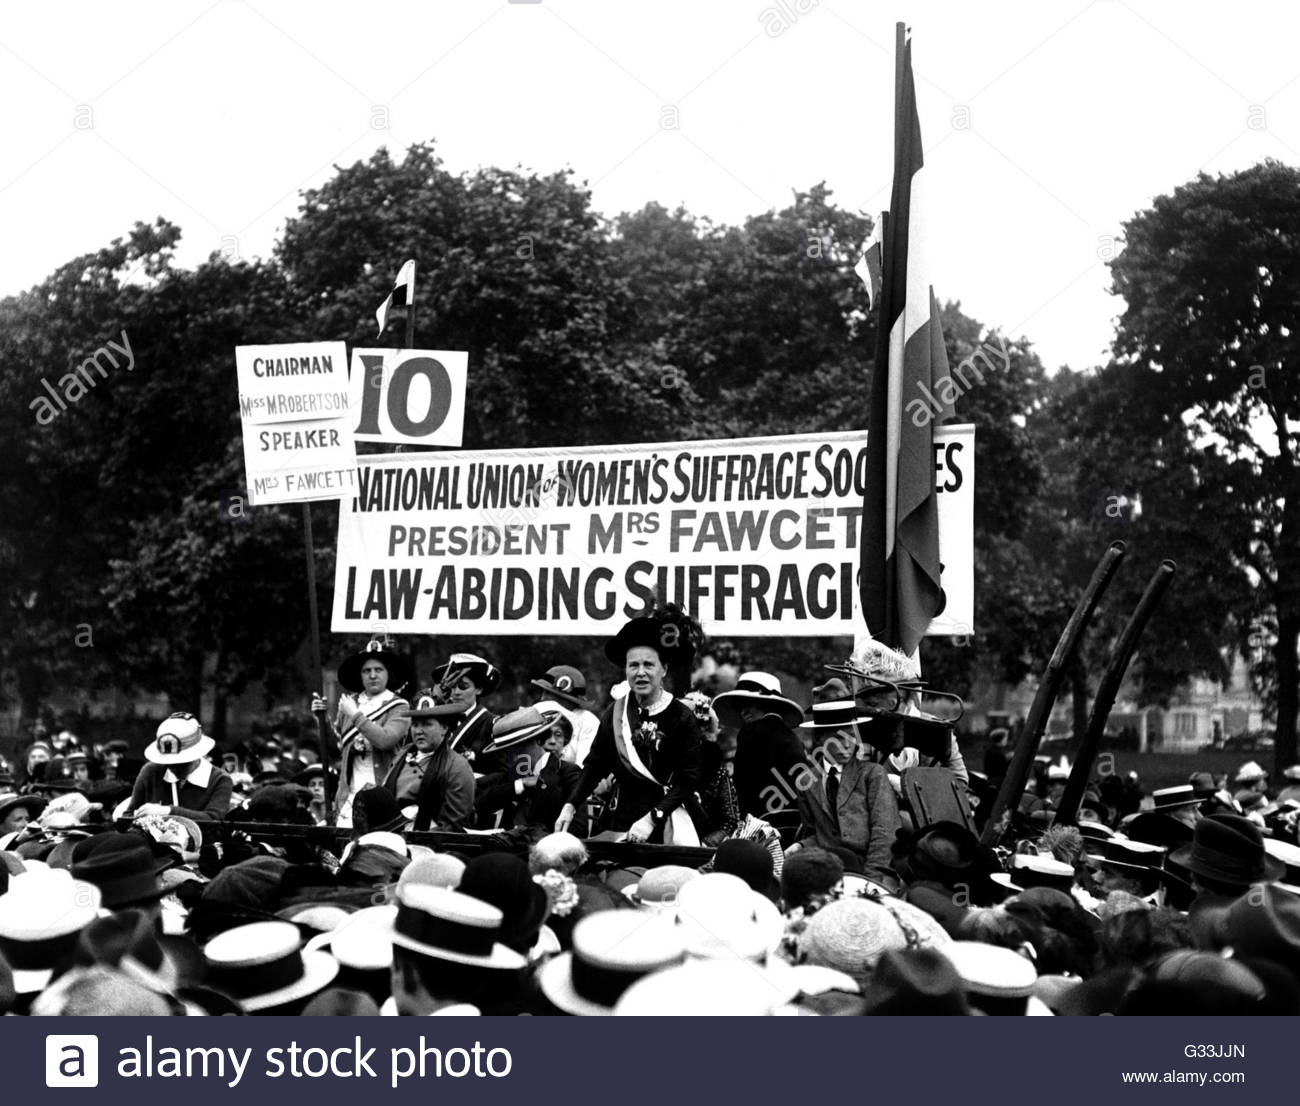 File photo dated 26/7/1913 of Millicent Fawcett, who founded the National Union of Women's Suffrage, speaks - Stock Image